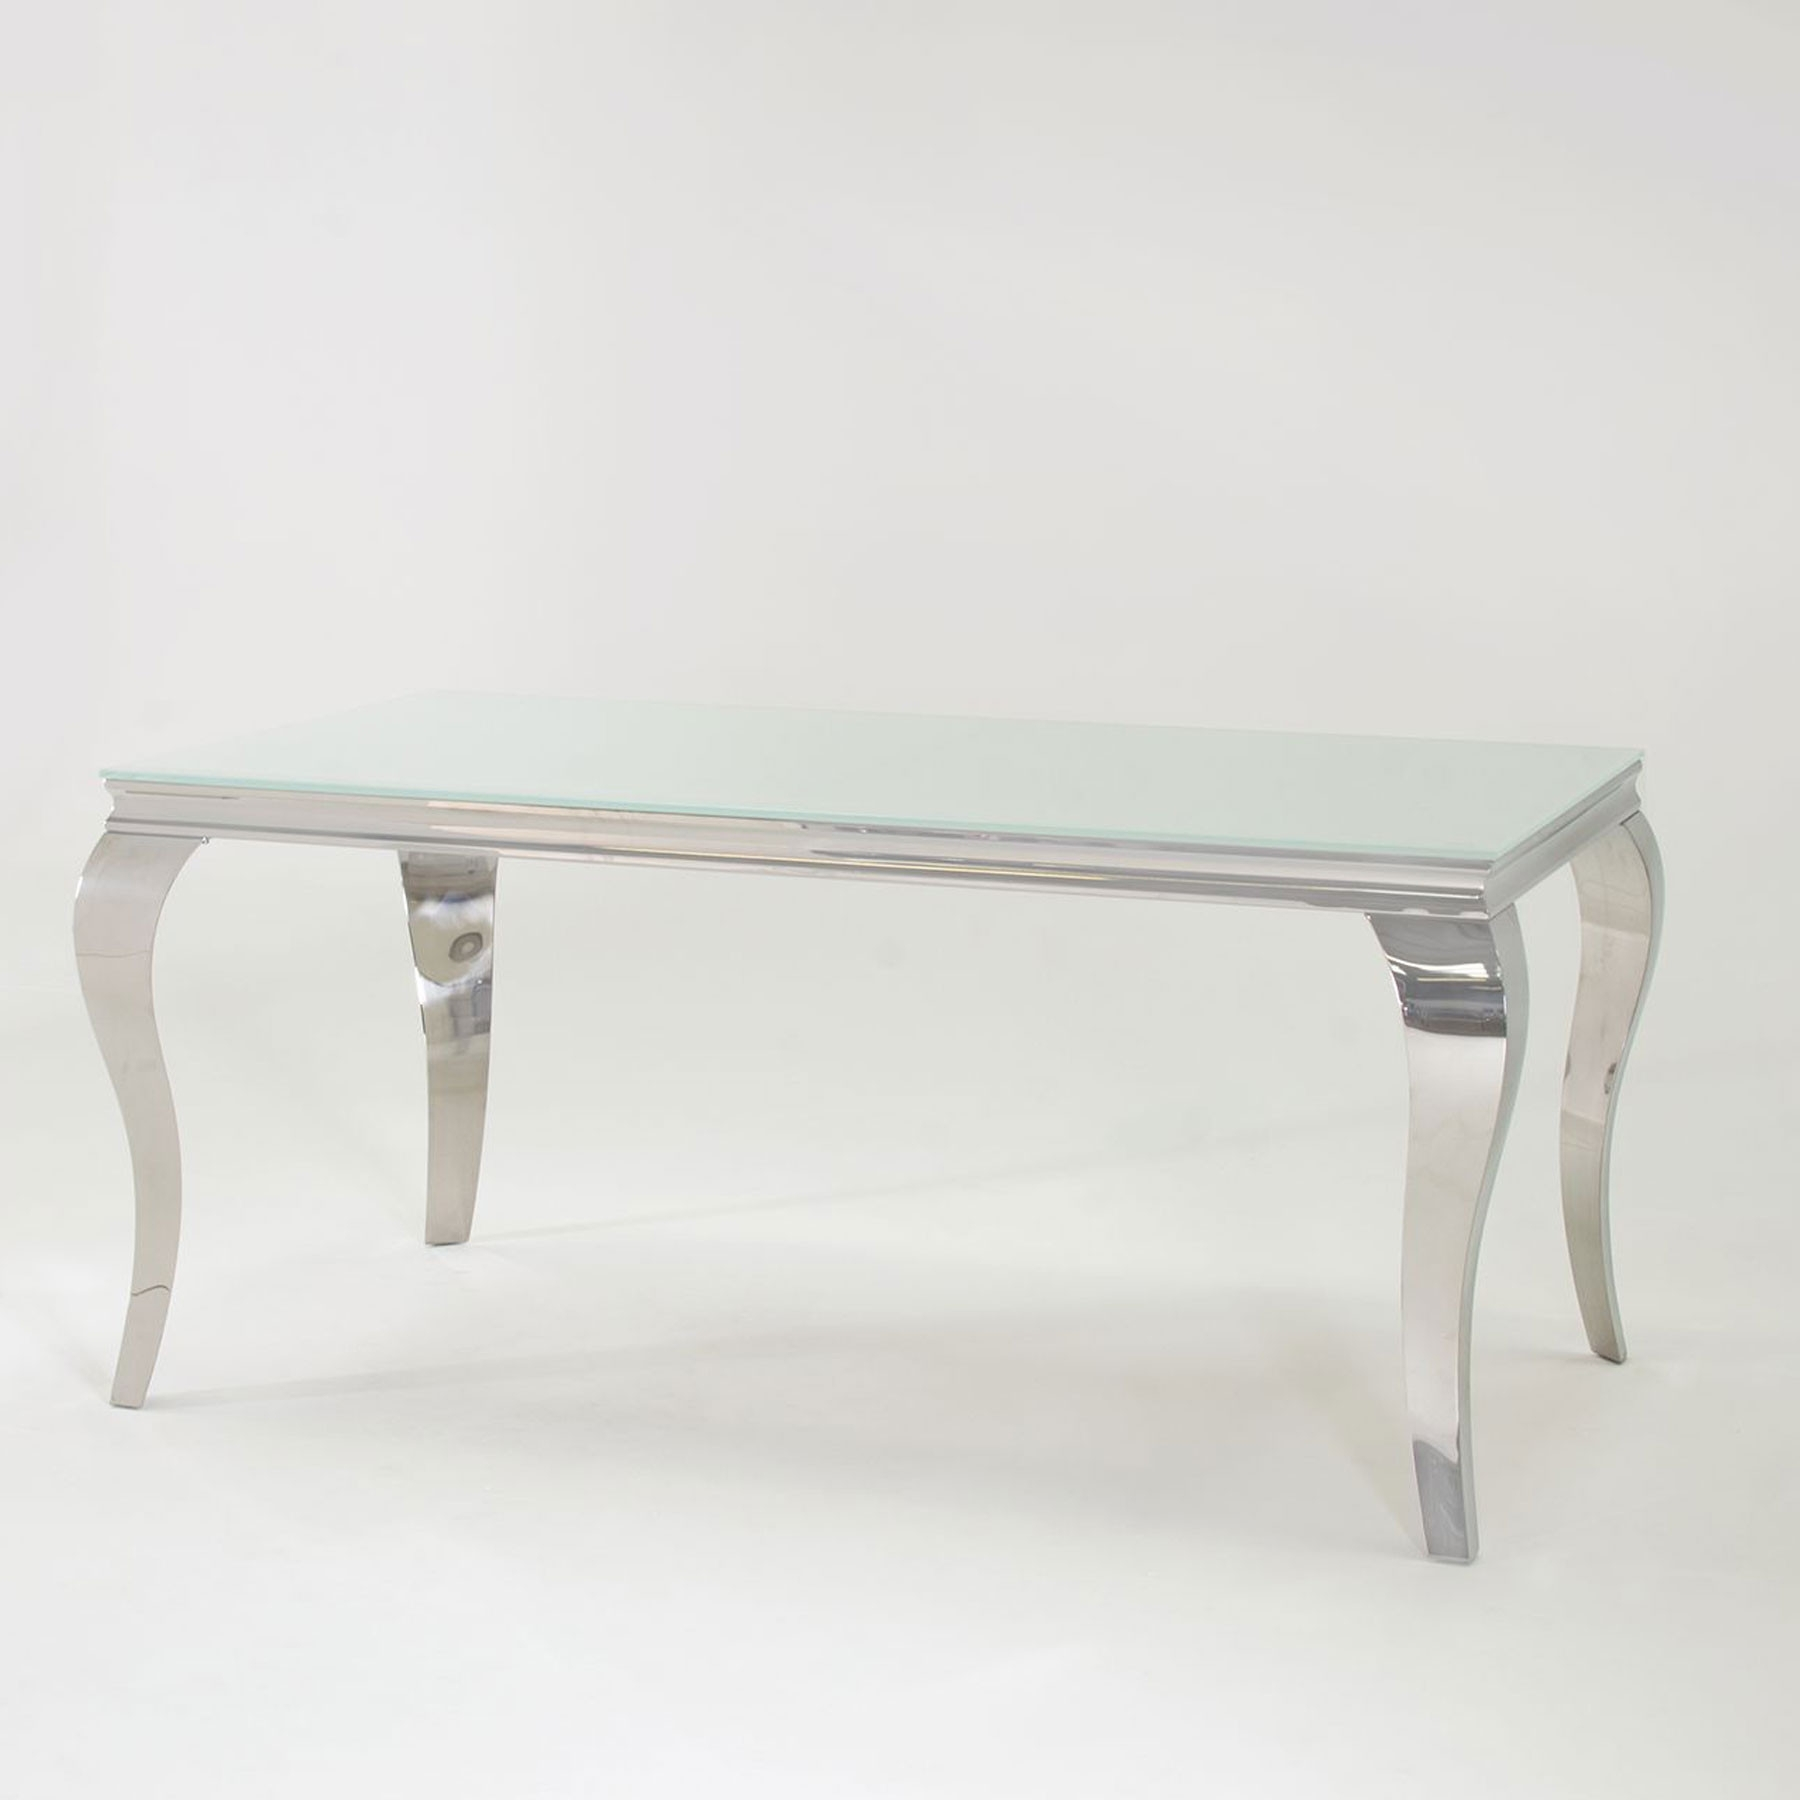 Widely Used Fadenza White Glass 200Cm Dining Table With Regard To Glass Dining Tables With Wooden Legs (View 23 of 25)